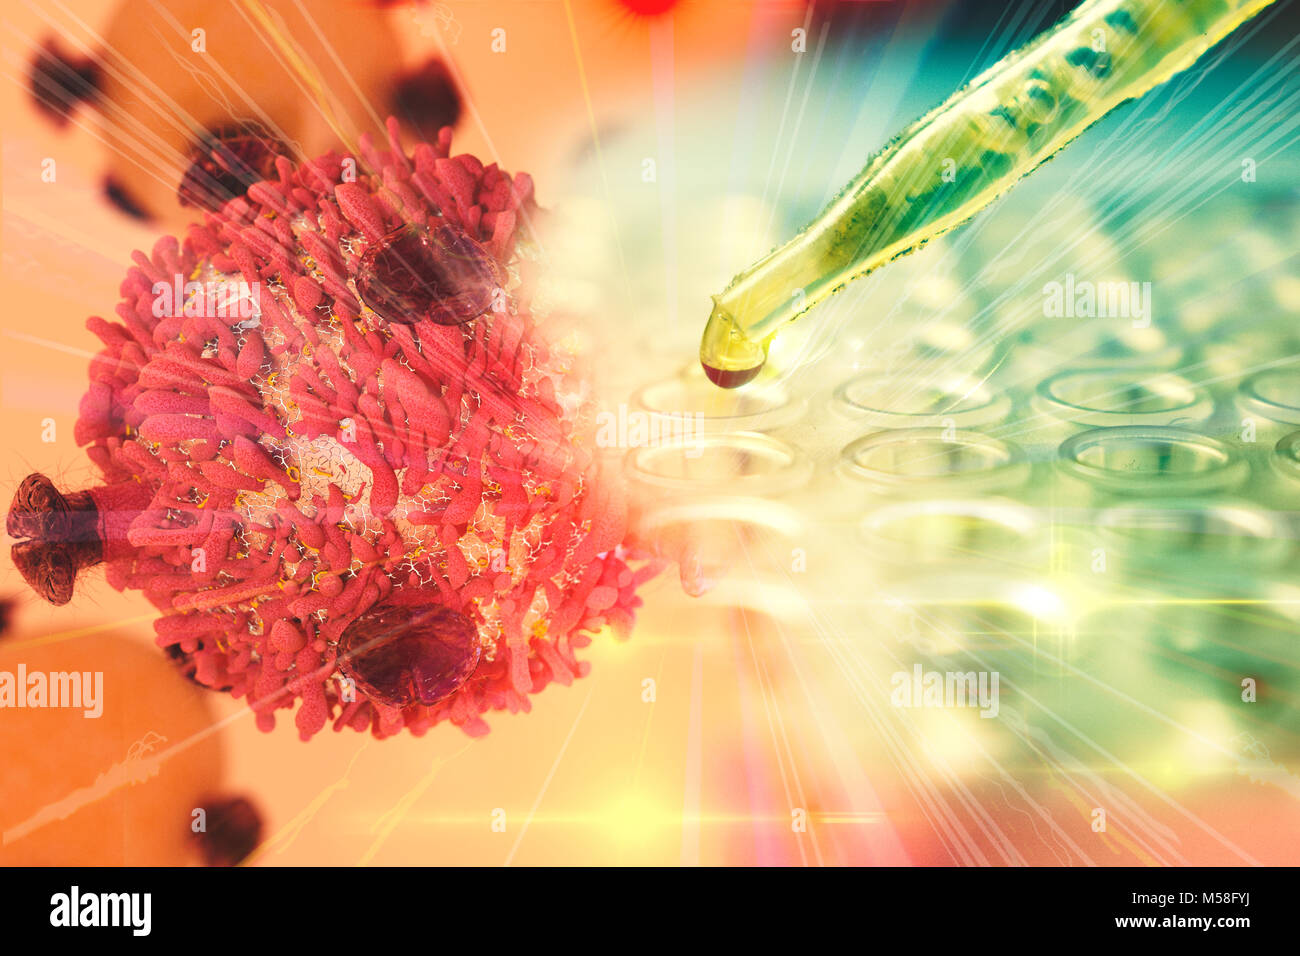 Gene Therapy for Cancer Treatment Concept Cancer therapy with T-cell and pipette - Stock Image